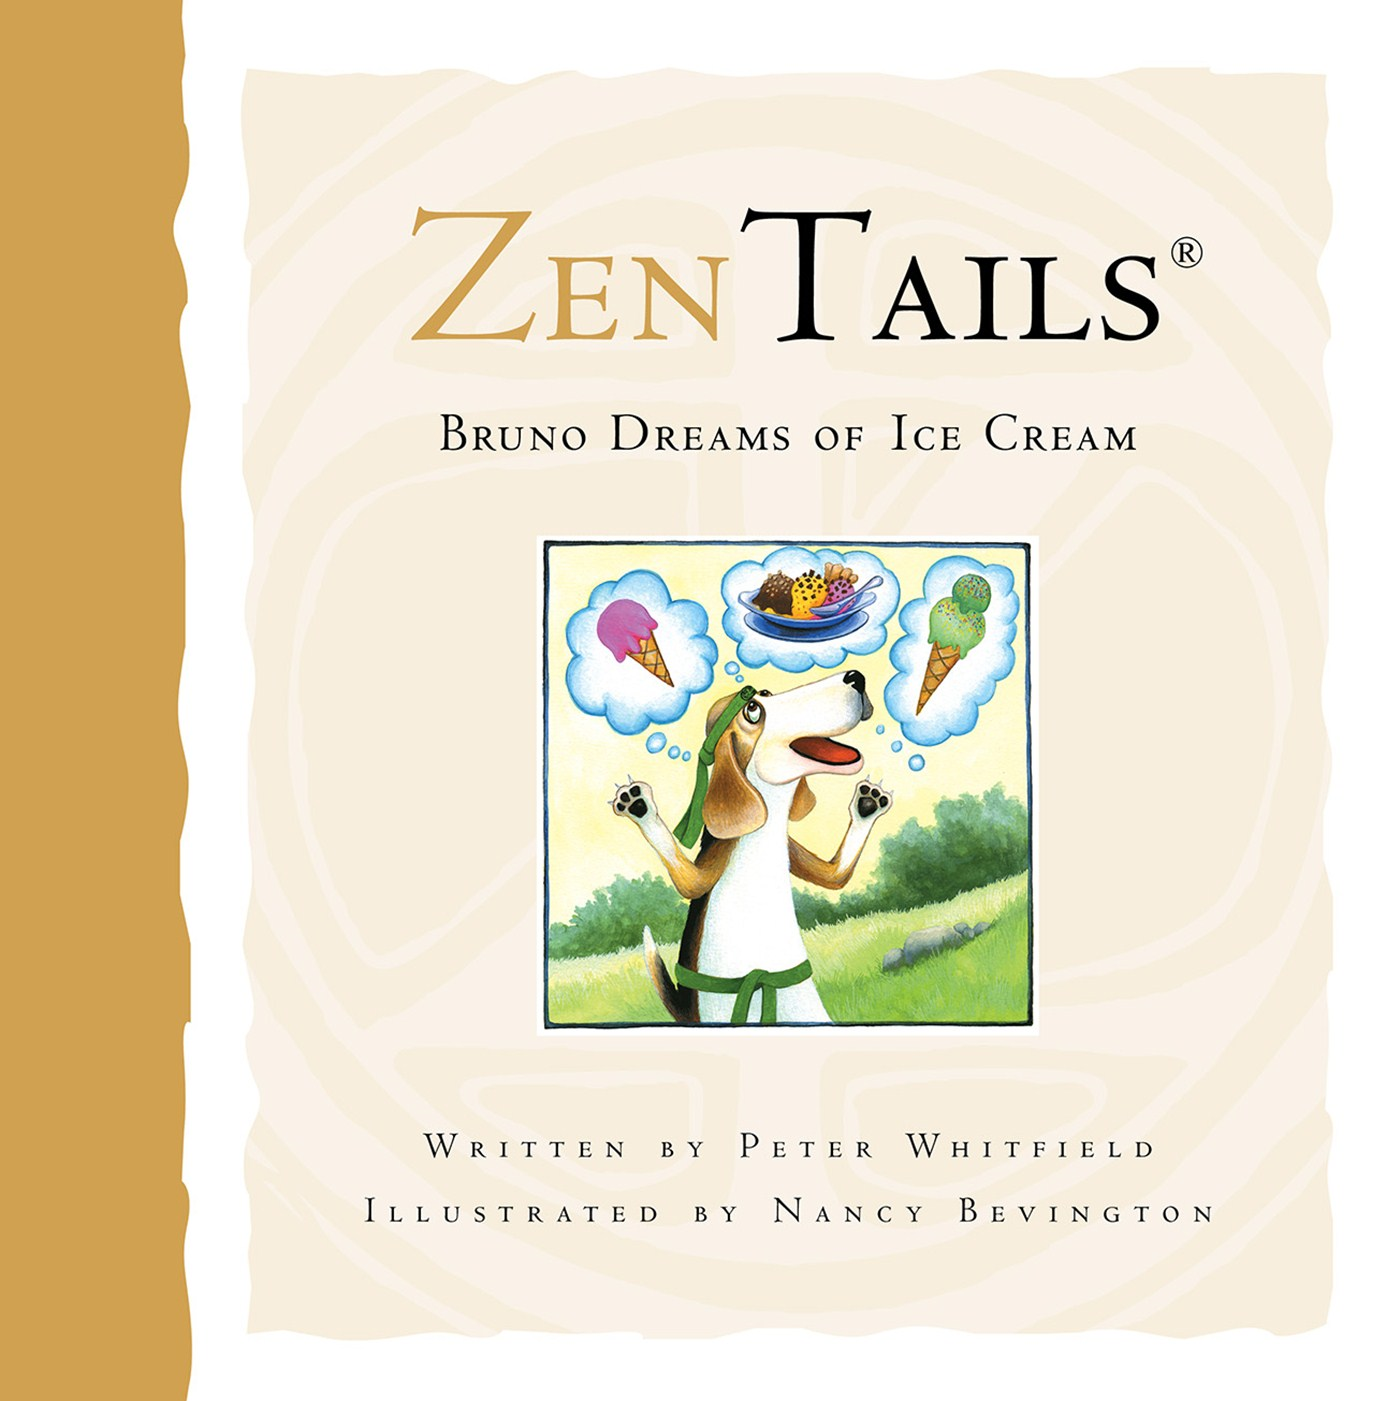 Zen Tails - Bruno Dreams of Ice Cream